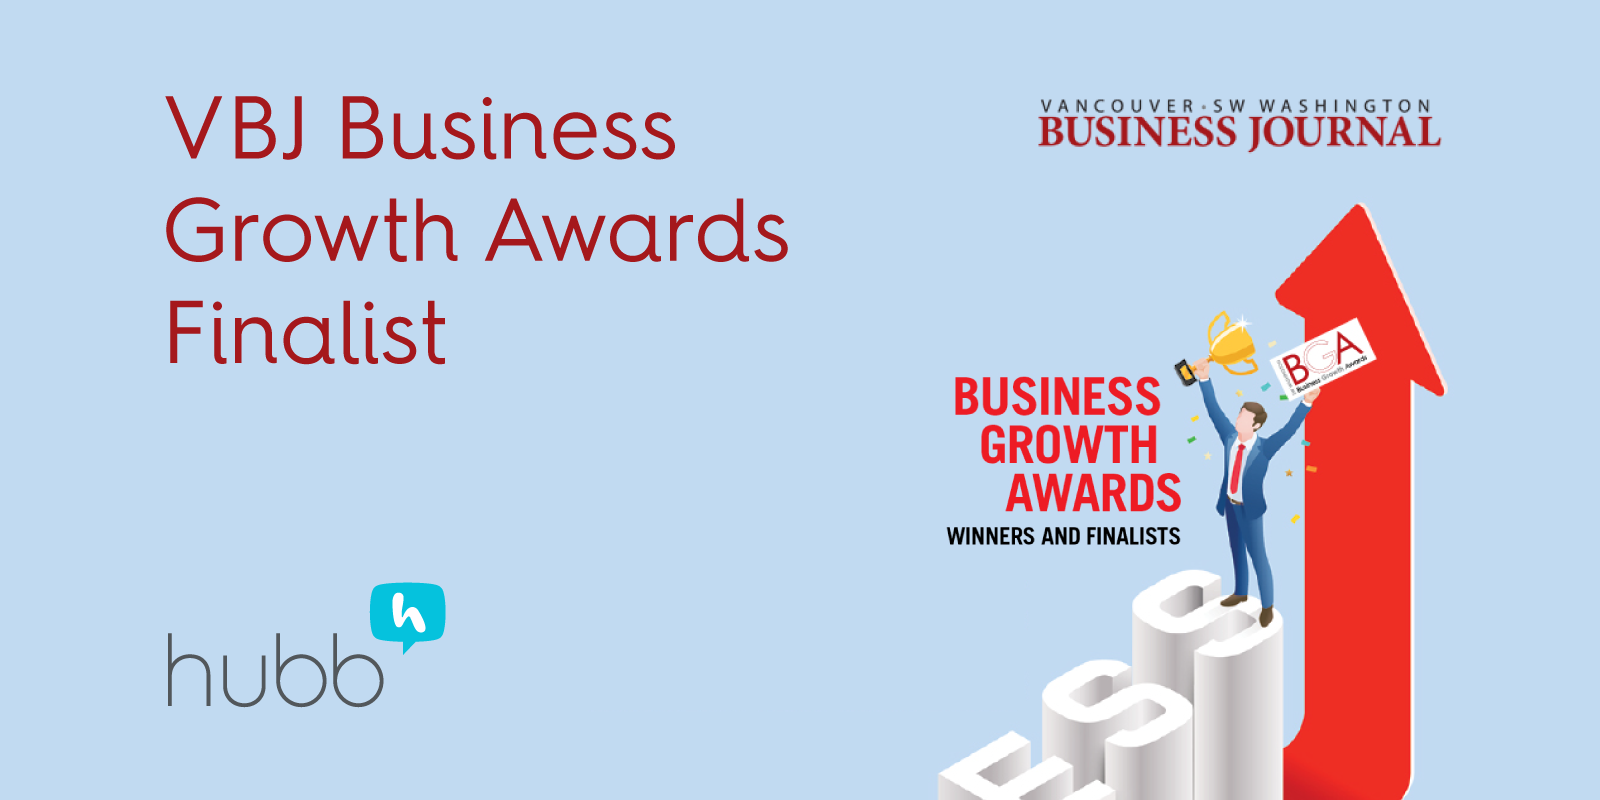 VBJ Business Growth Awards Finalist 2019